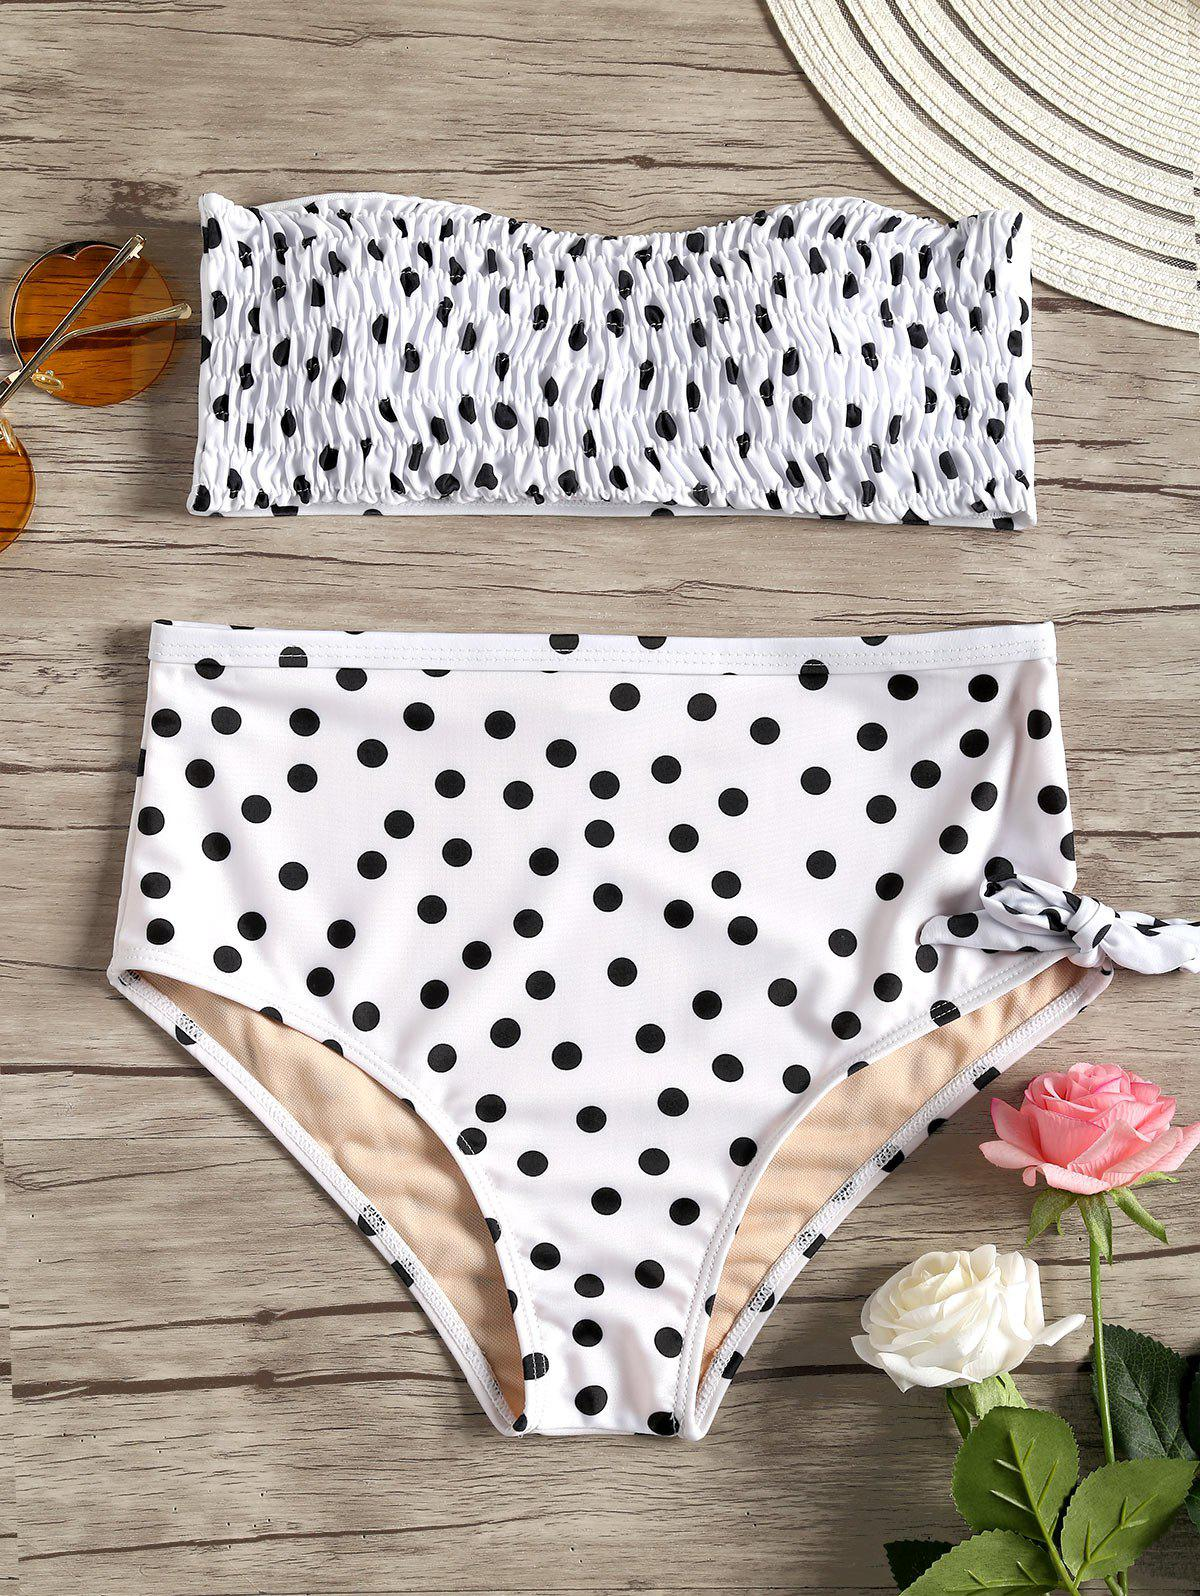 Polka Dot Strapless Shirred Bikini - WHITE/BLACK M